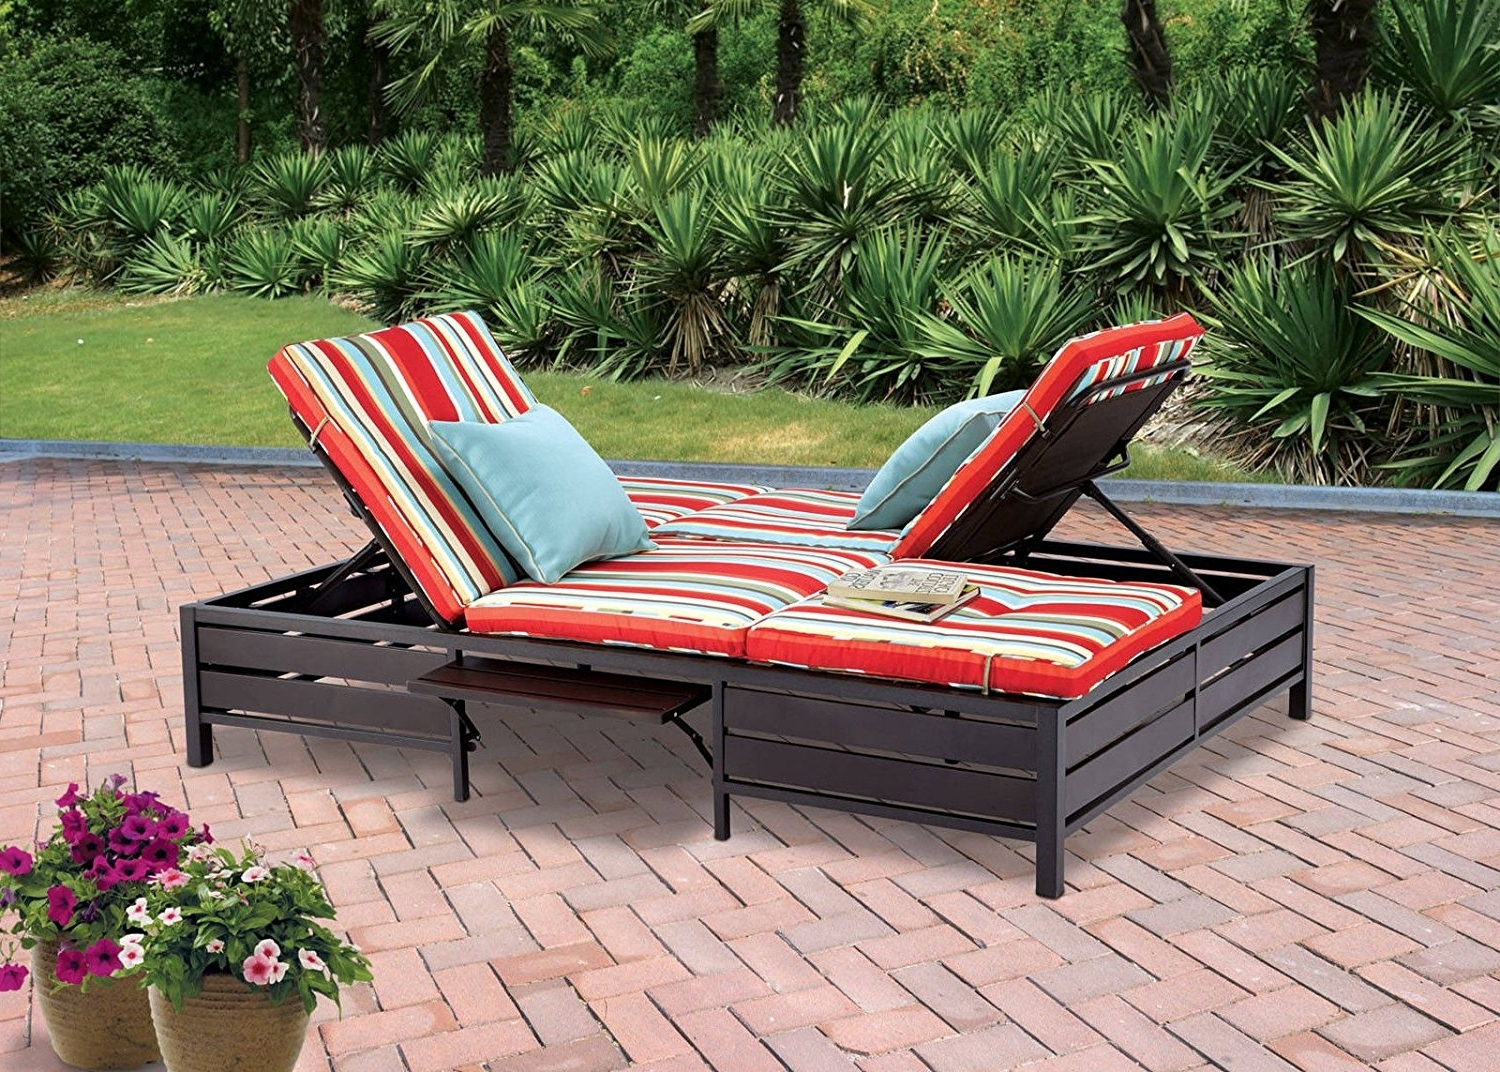 Amazon : Double Chaise Lounger – This Red Stripe Outdoor In Popular Outdoor Double Chaise Lounges (View 2 of 15)